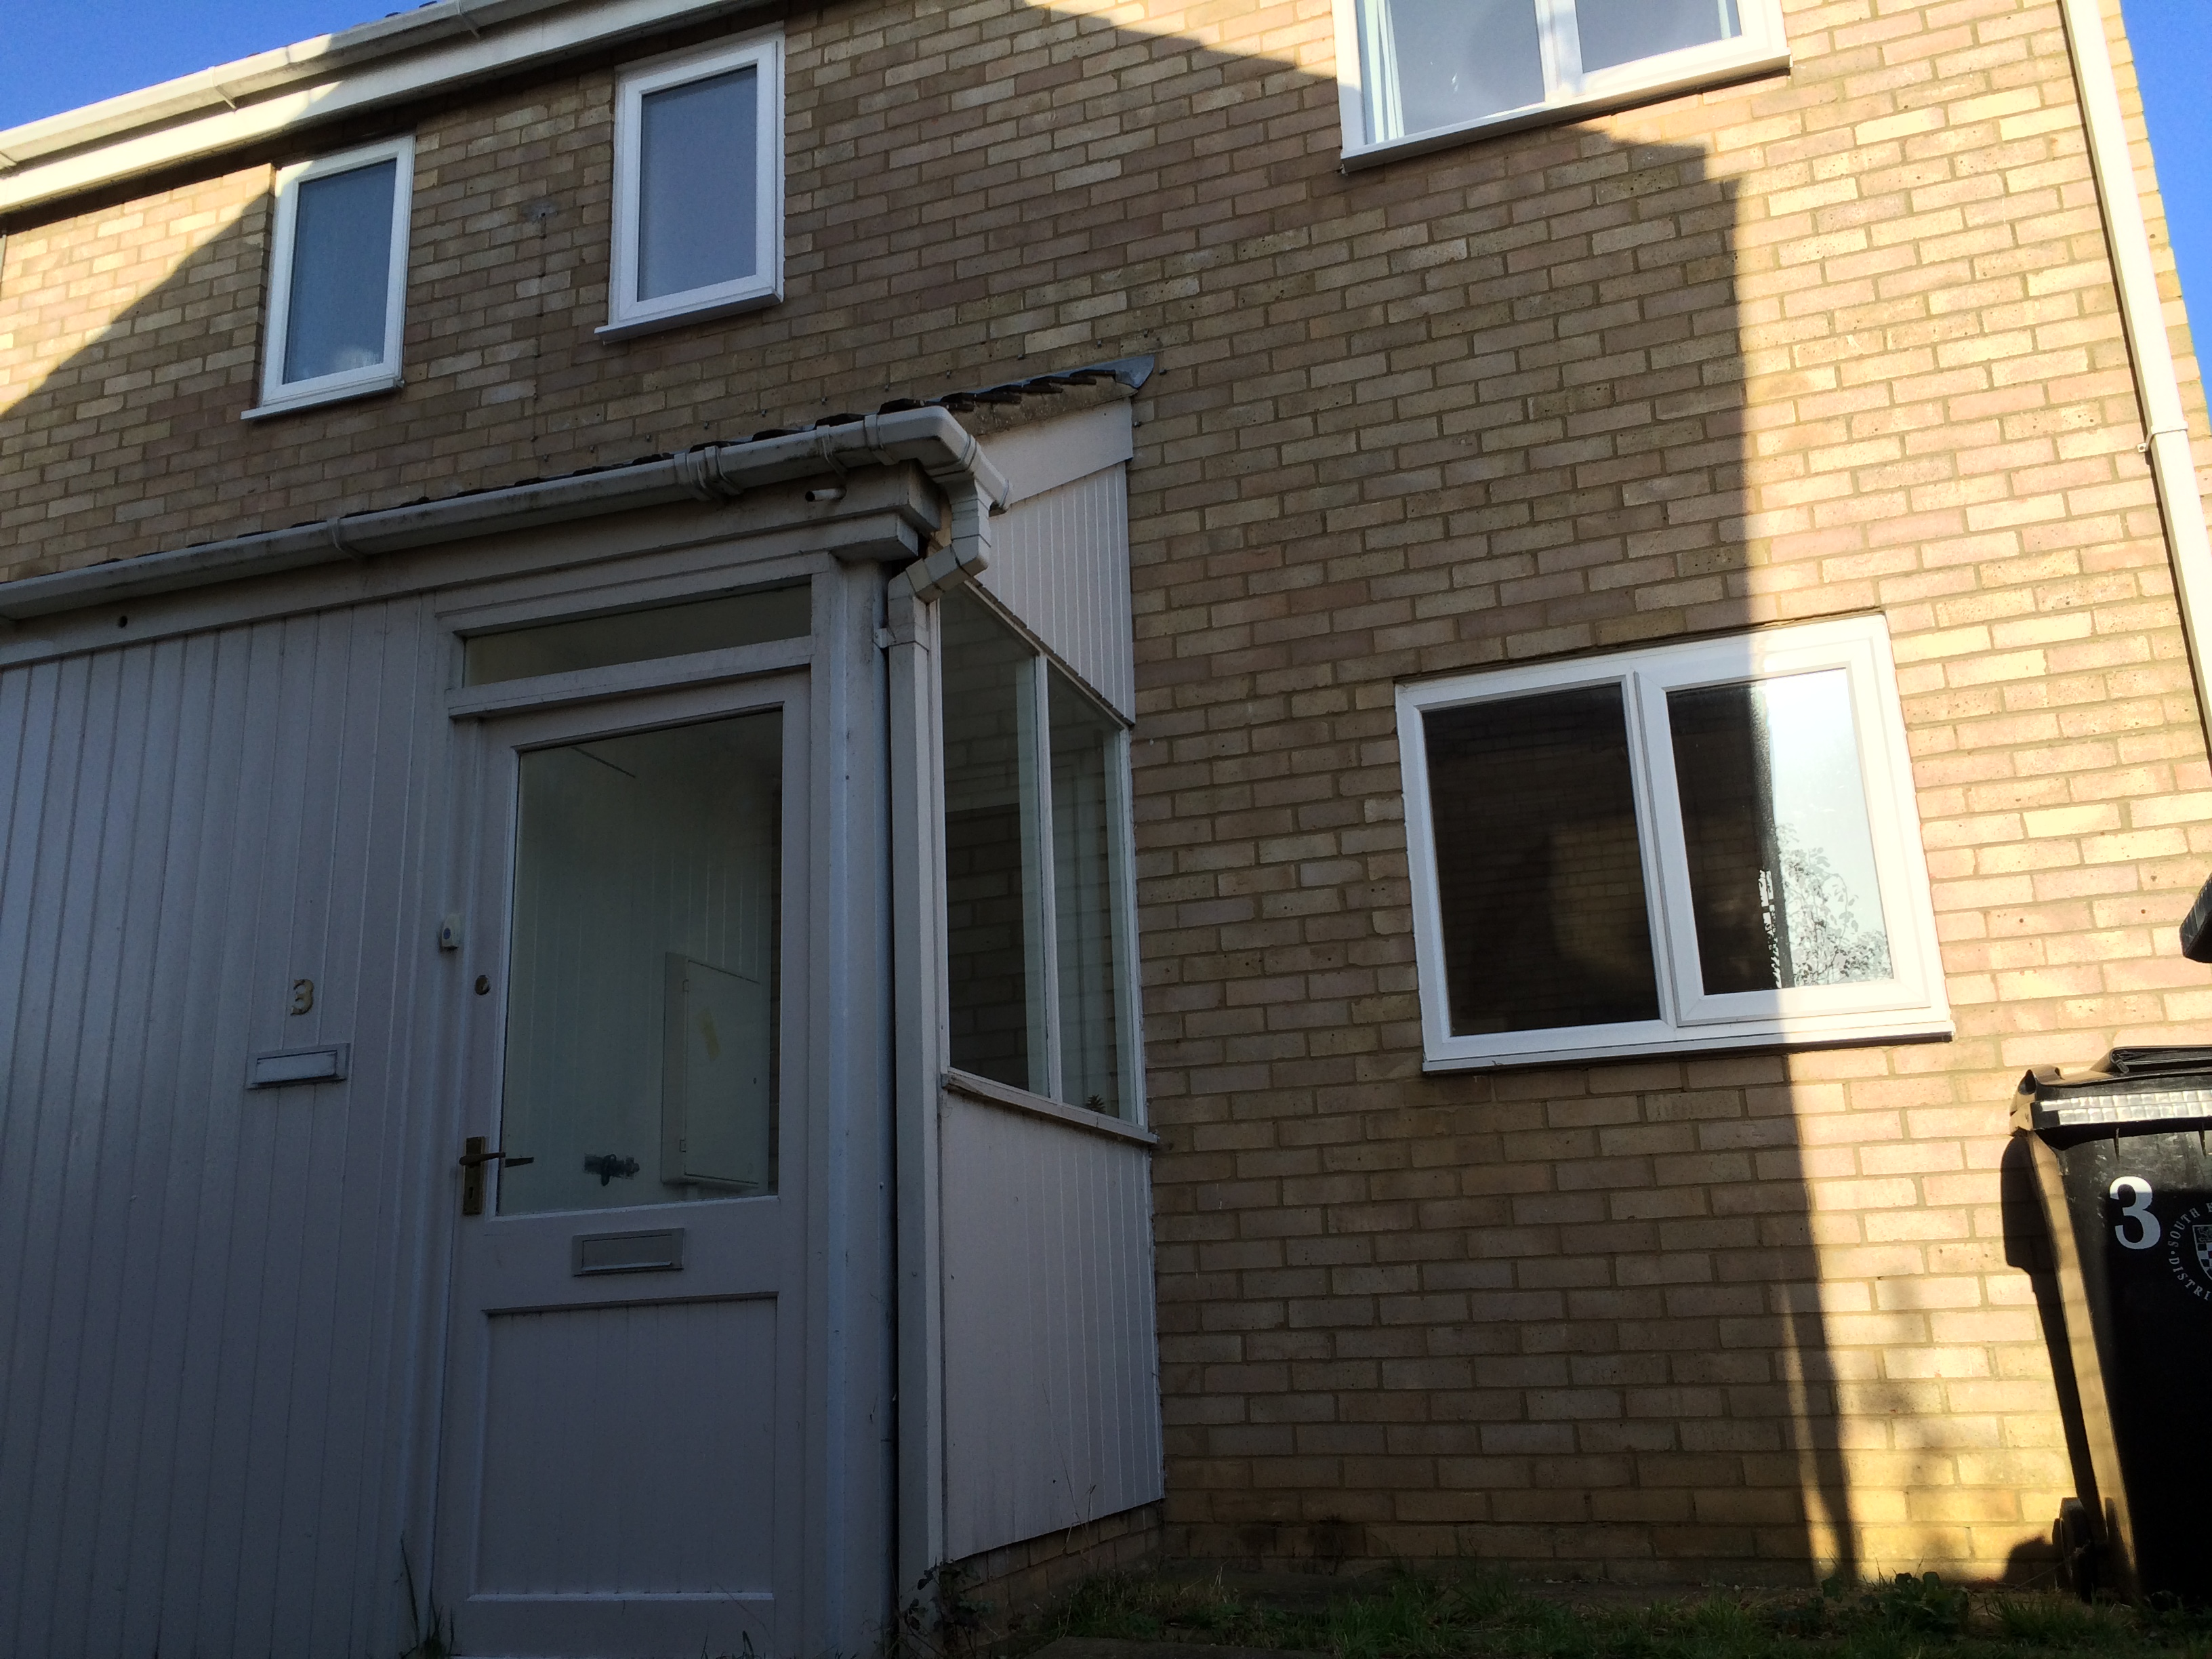 To Let 2 Bedroom end terrce house